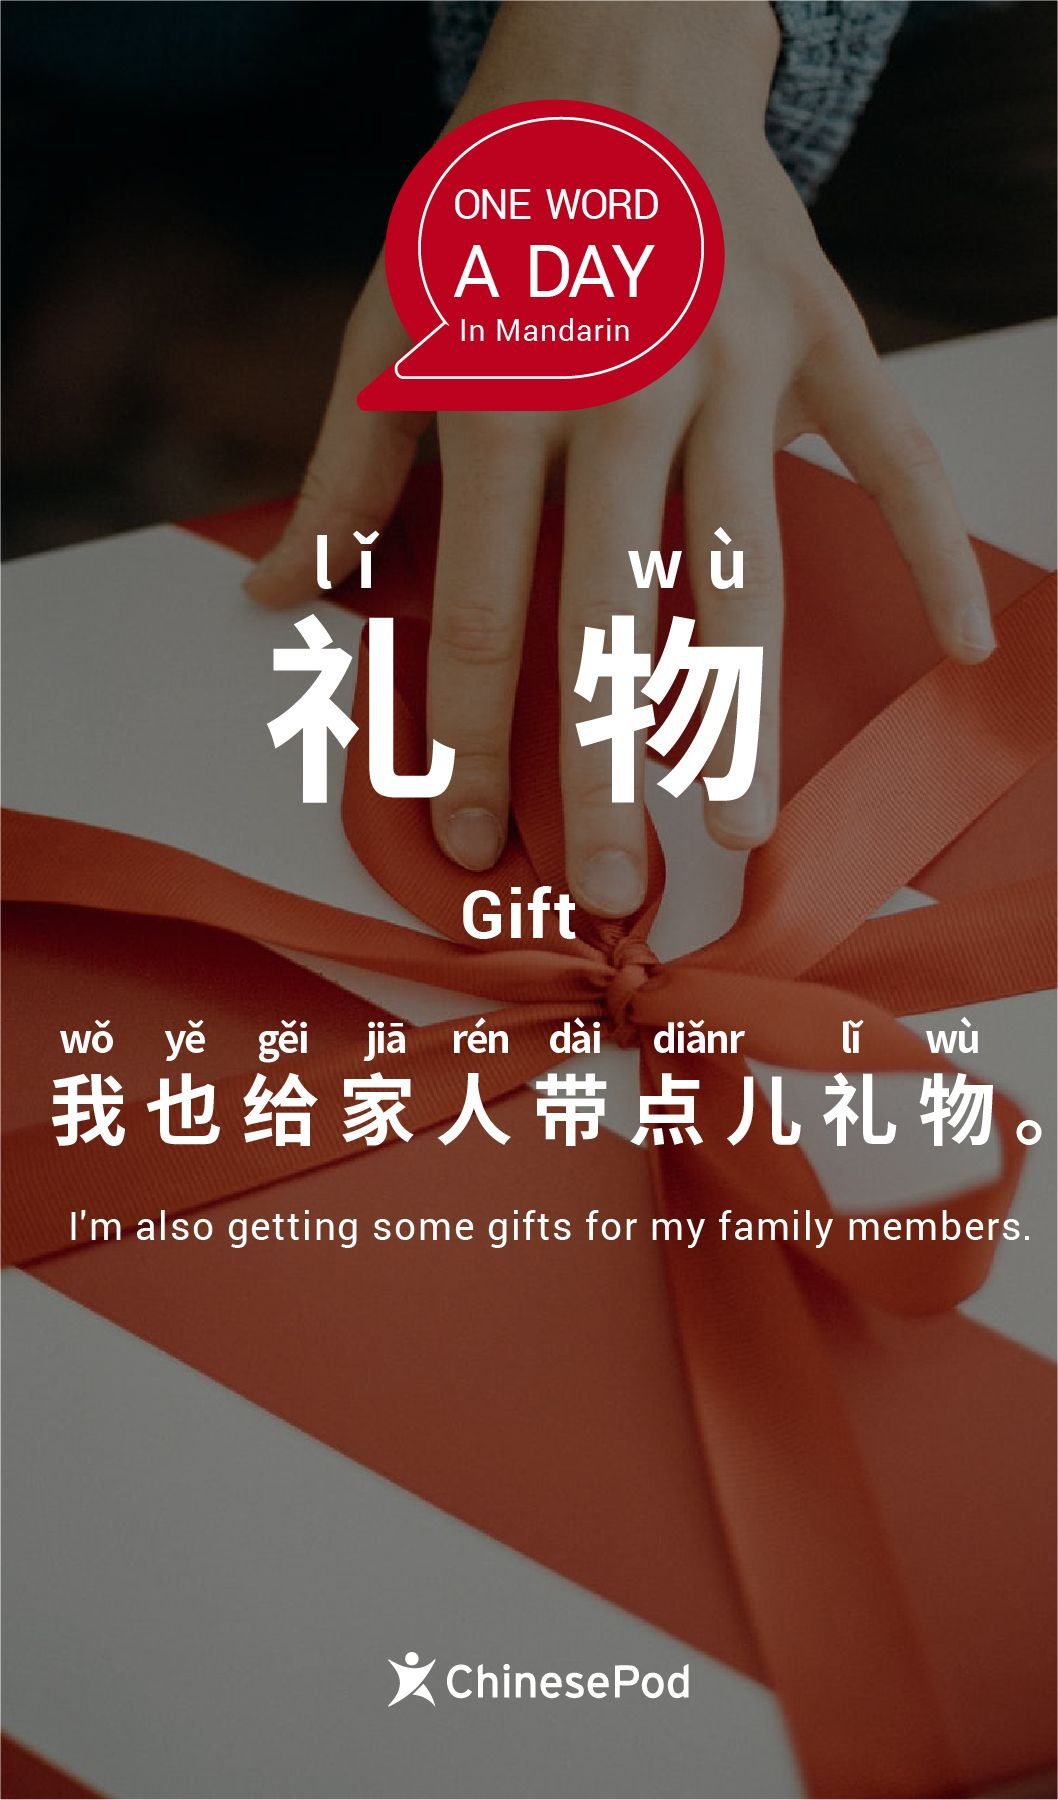 Learn Chinese with ChinesePod, GIFTS in 2020 How to